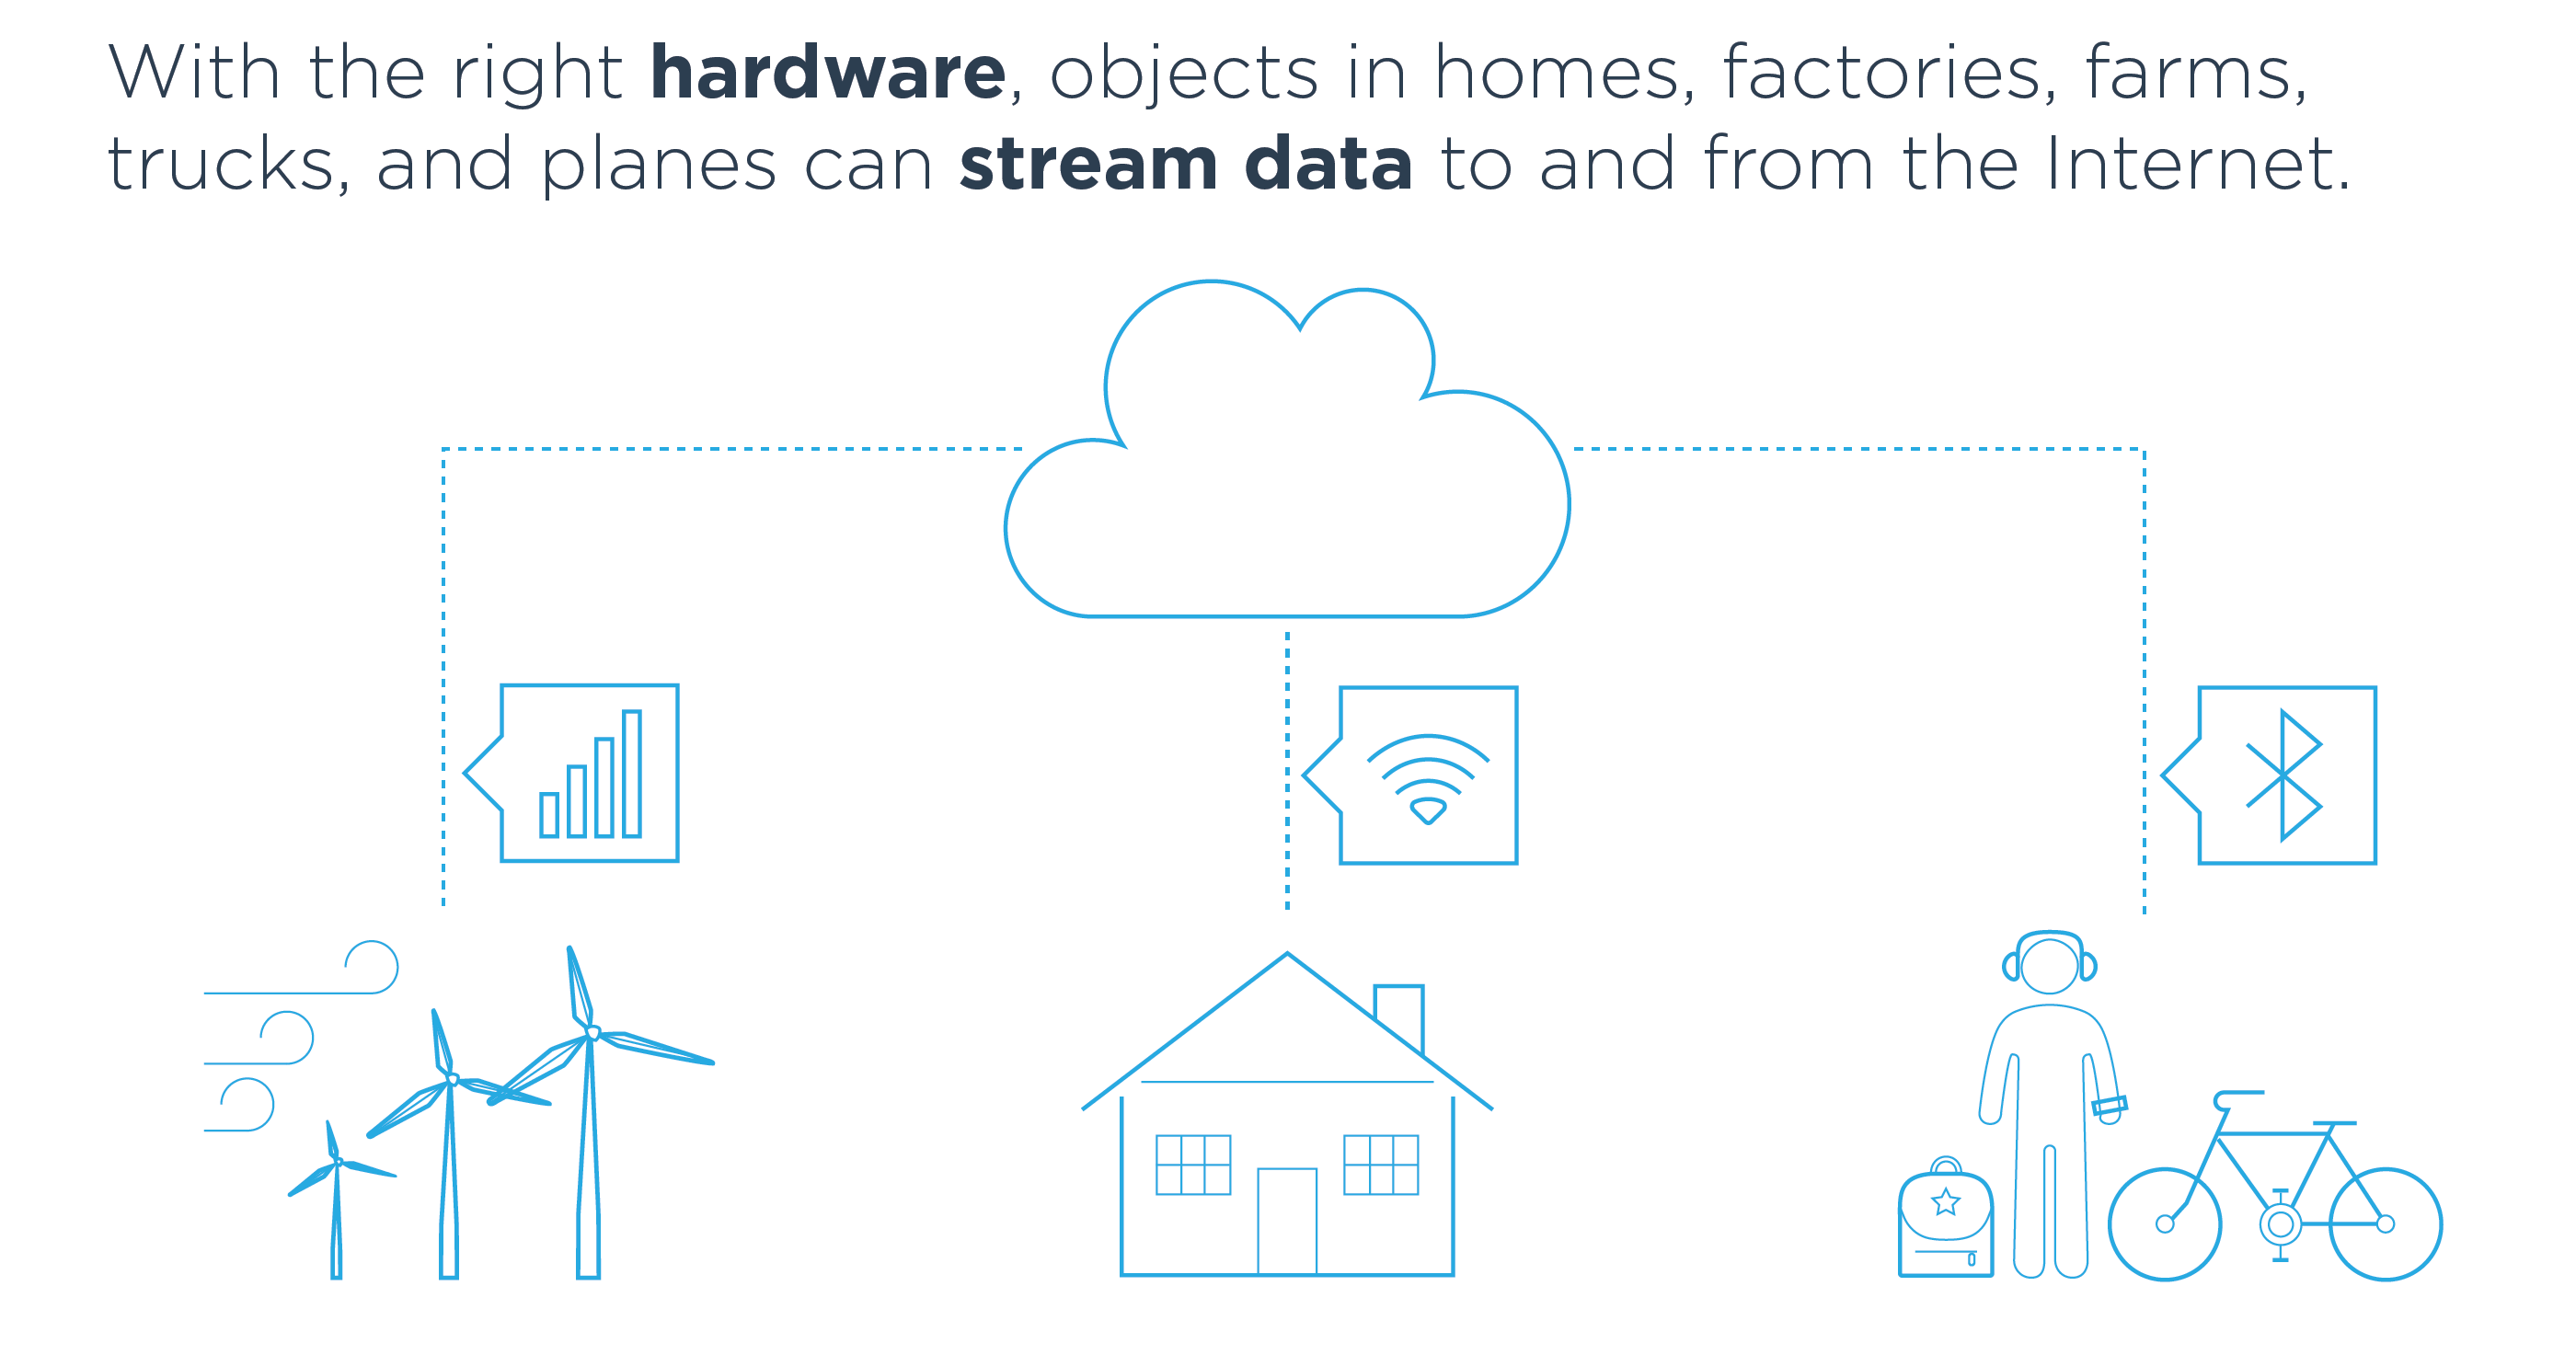 With the right hardware, objects in homes, factories, farms, trucks, and planes can stream data to and from the Internet.